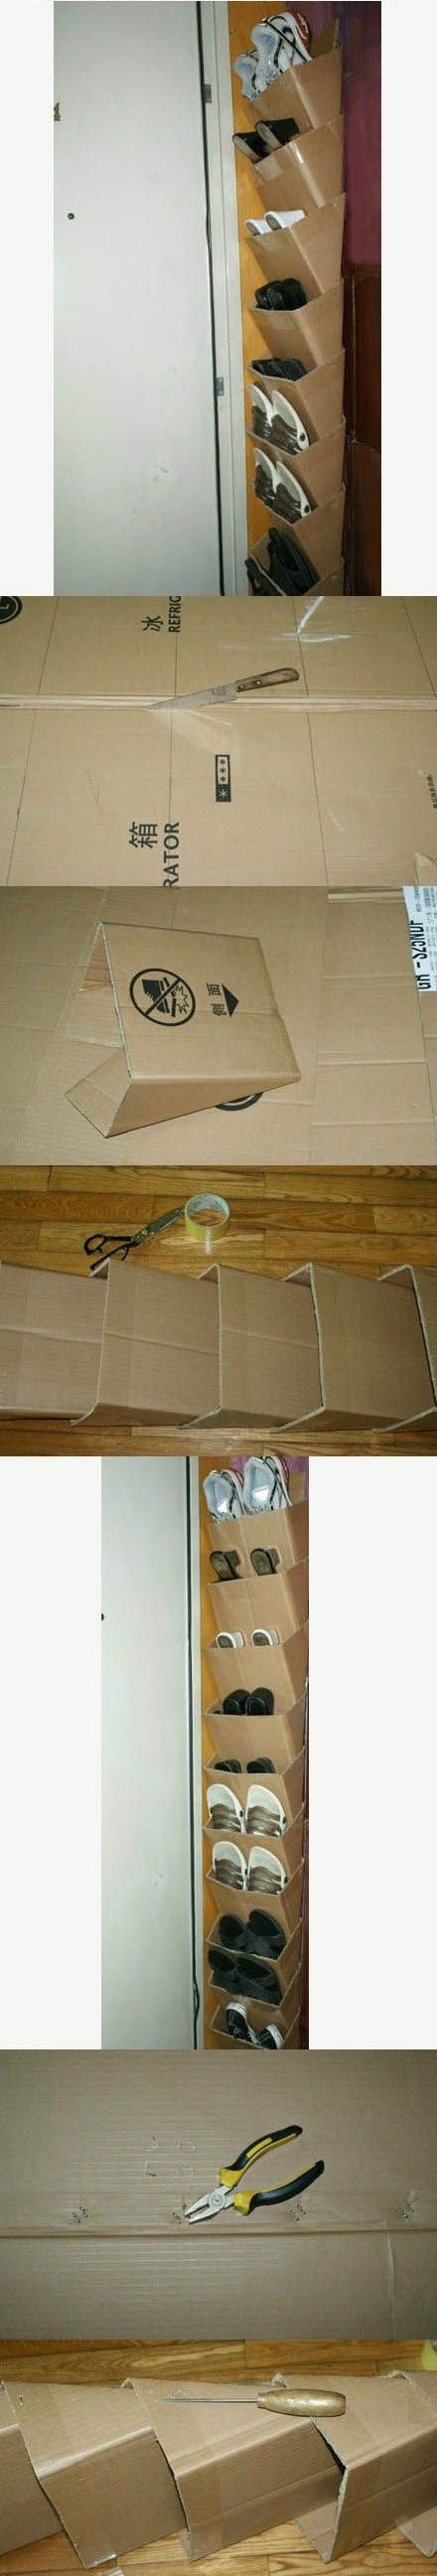 Best ideas about DIY Shoe Rack Cardboard . Save or Pin How to make a shoe organizer using used cardboard boxes Now.